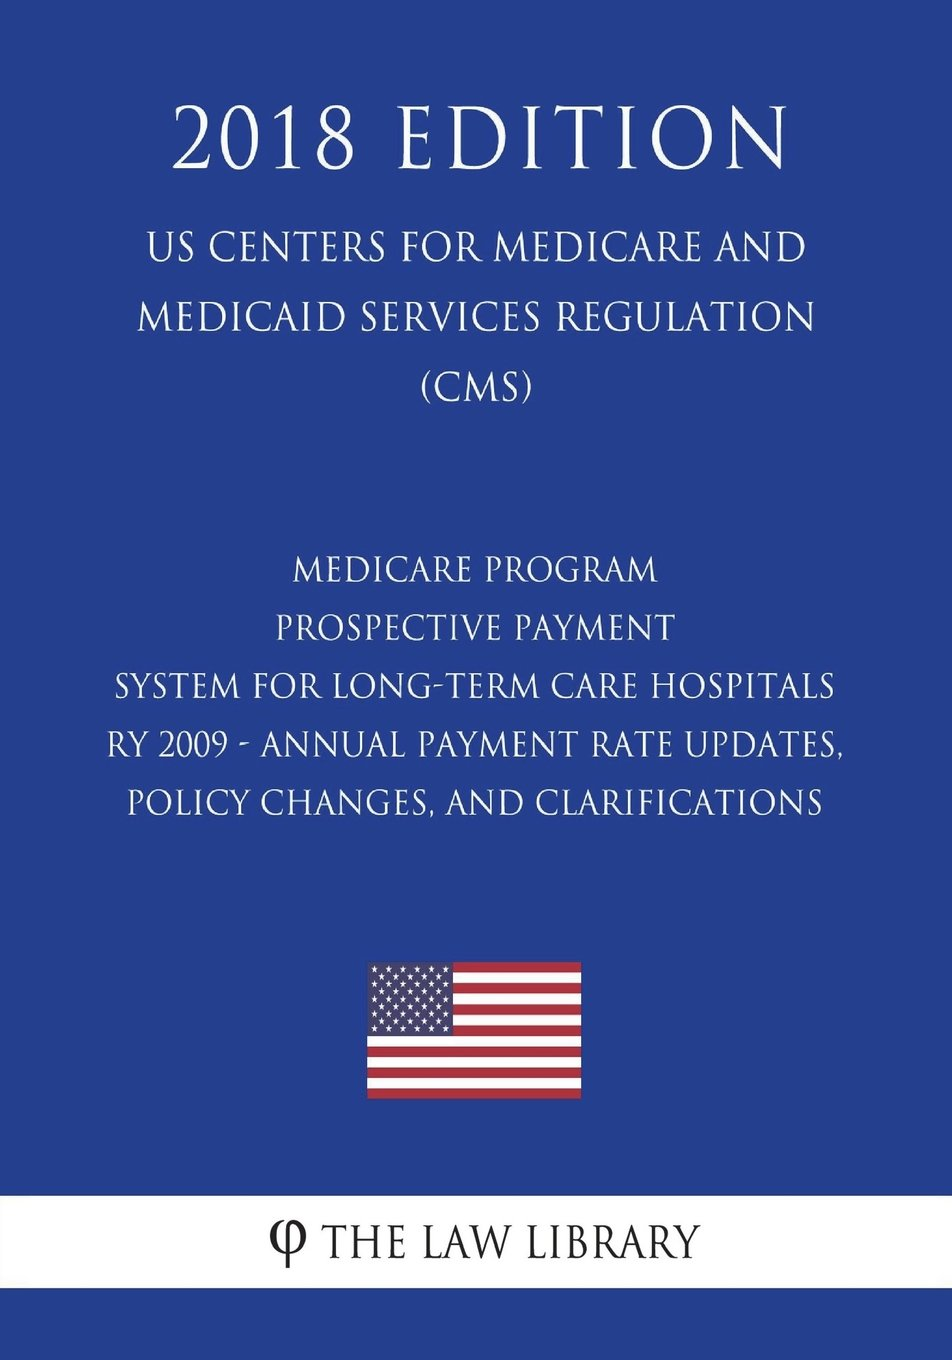 Download Medicare Program - Prospective Payment System for Long-Term Care Hospitals RY 2009 - Annual Payment Rate Updates, Policy Changes, and Clarifications ... Services Regulation) (CMS) (2018 Edition) ebook